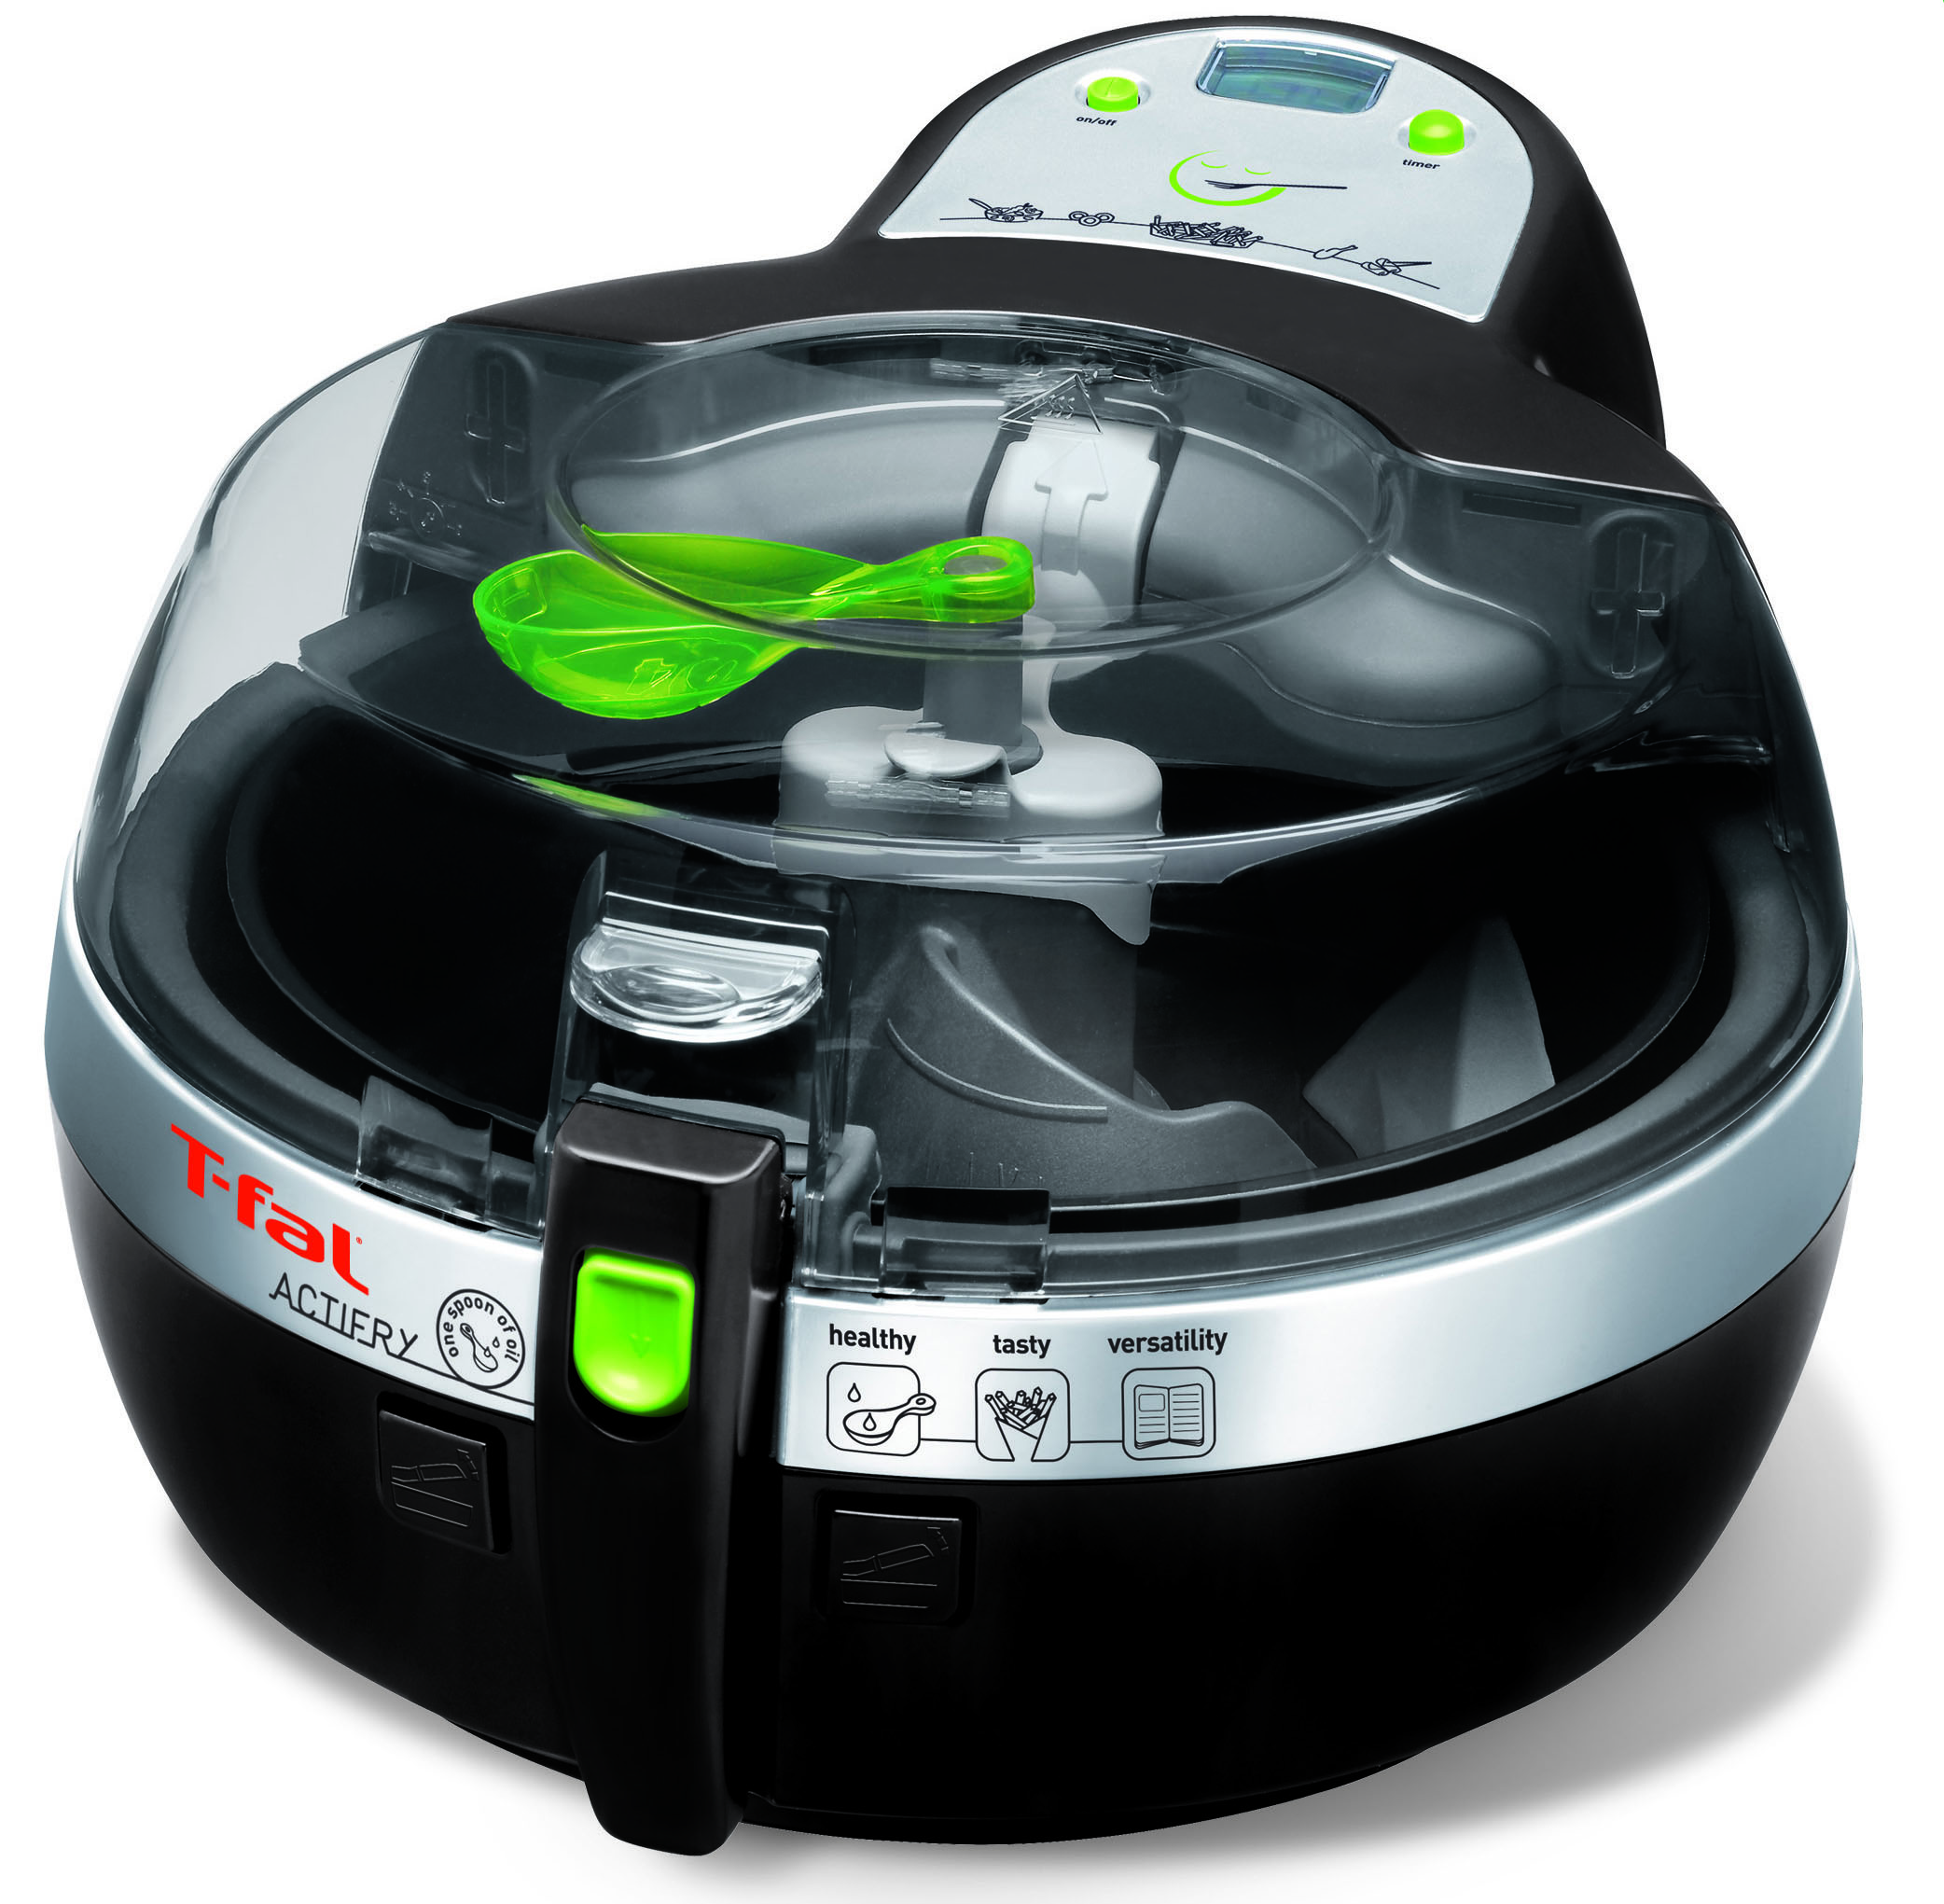 Win a Free T-Fal ActiFry Worth $250!